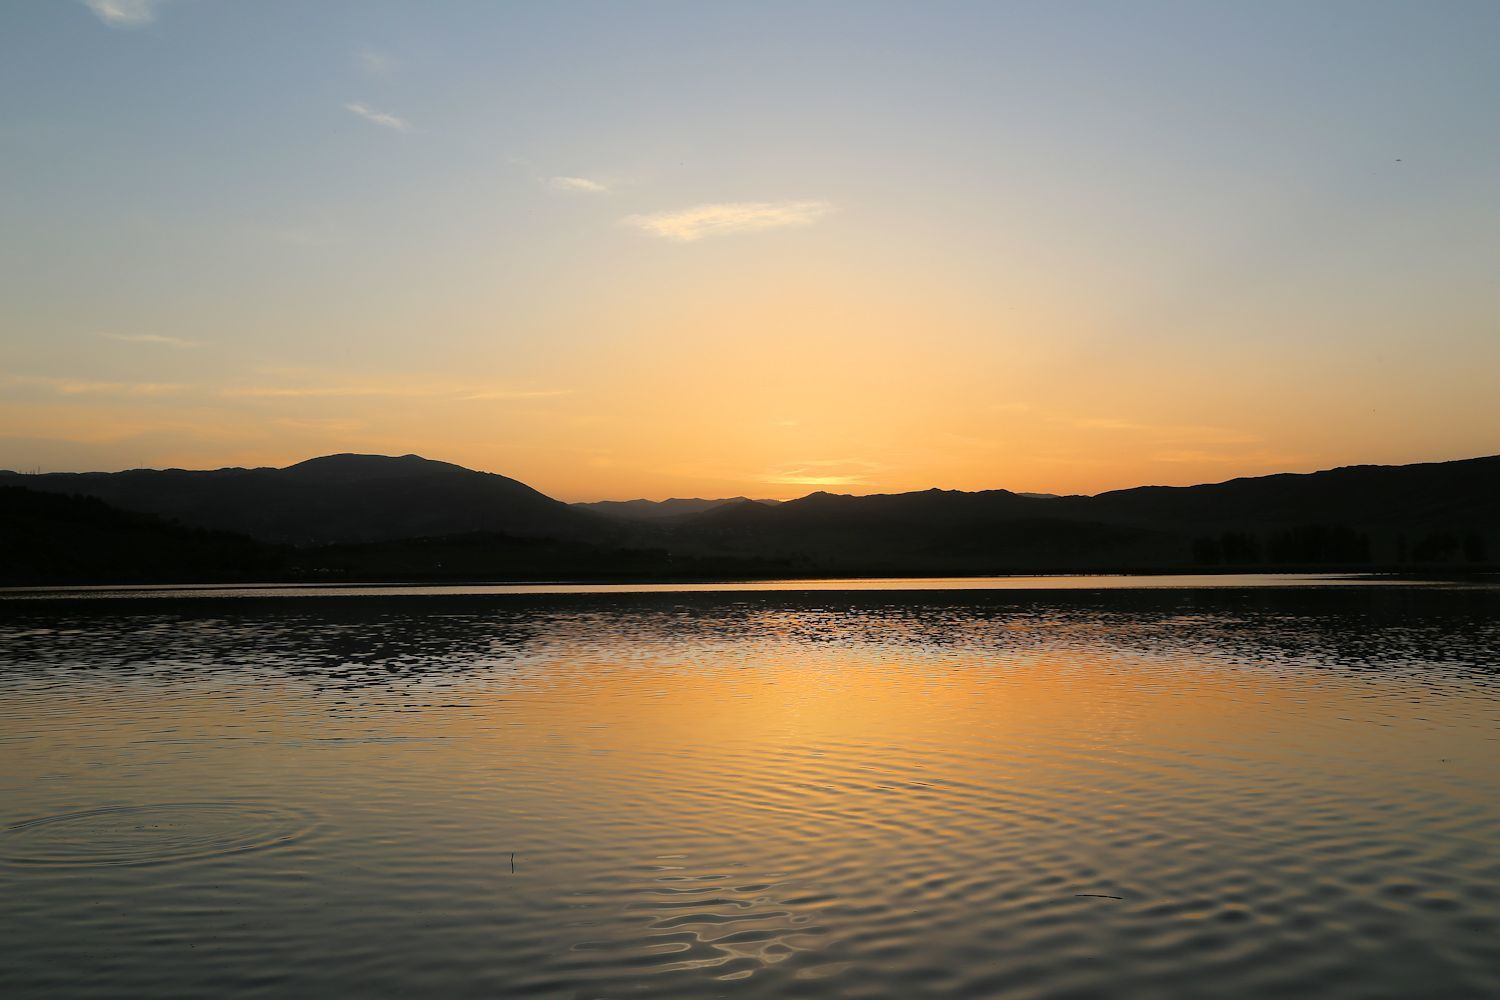 Sunset at Lisi lake